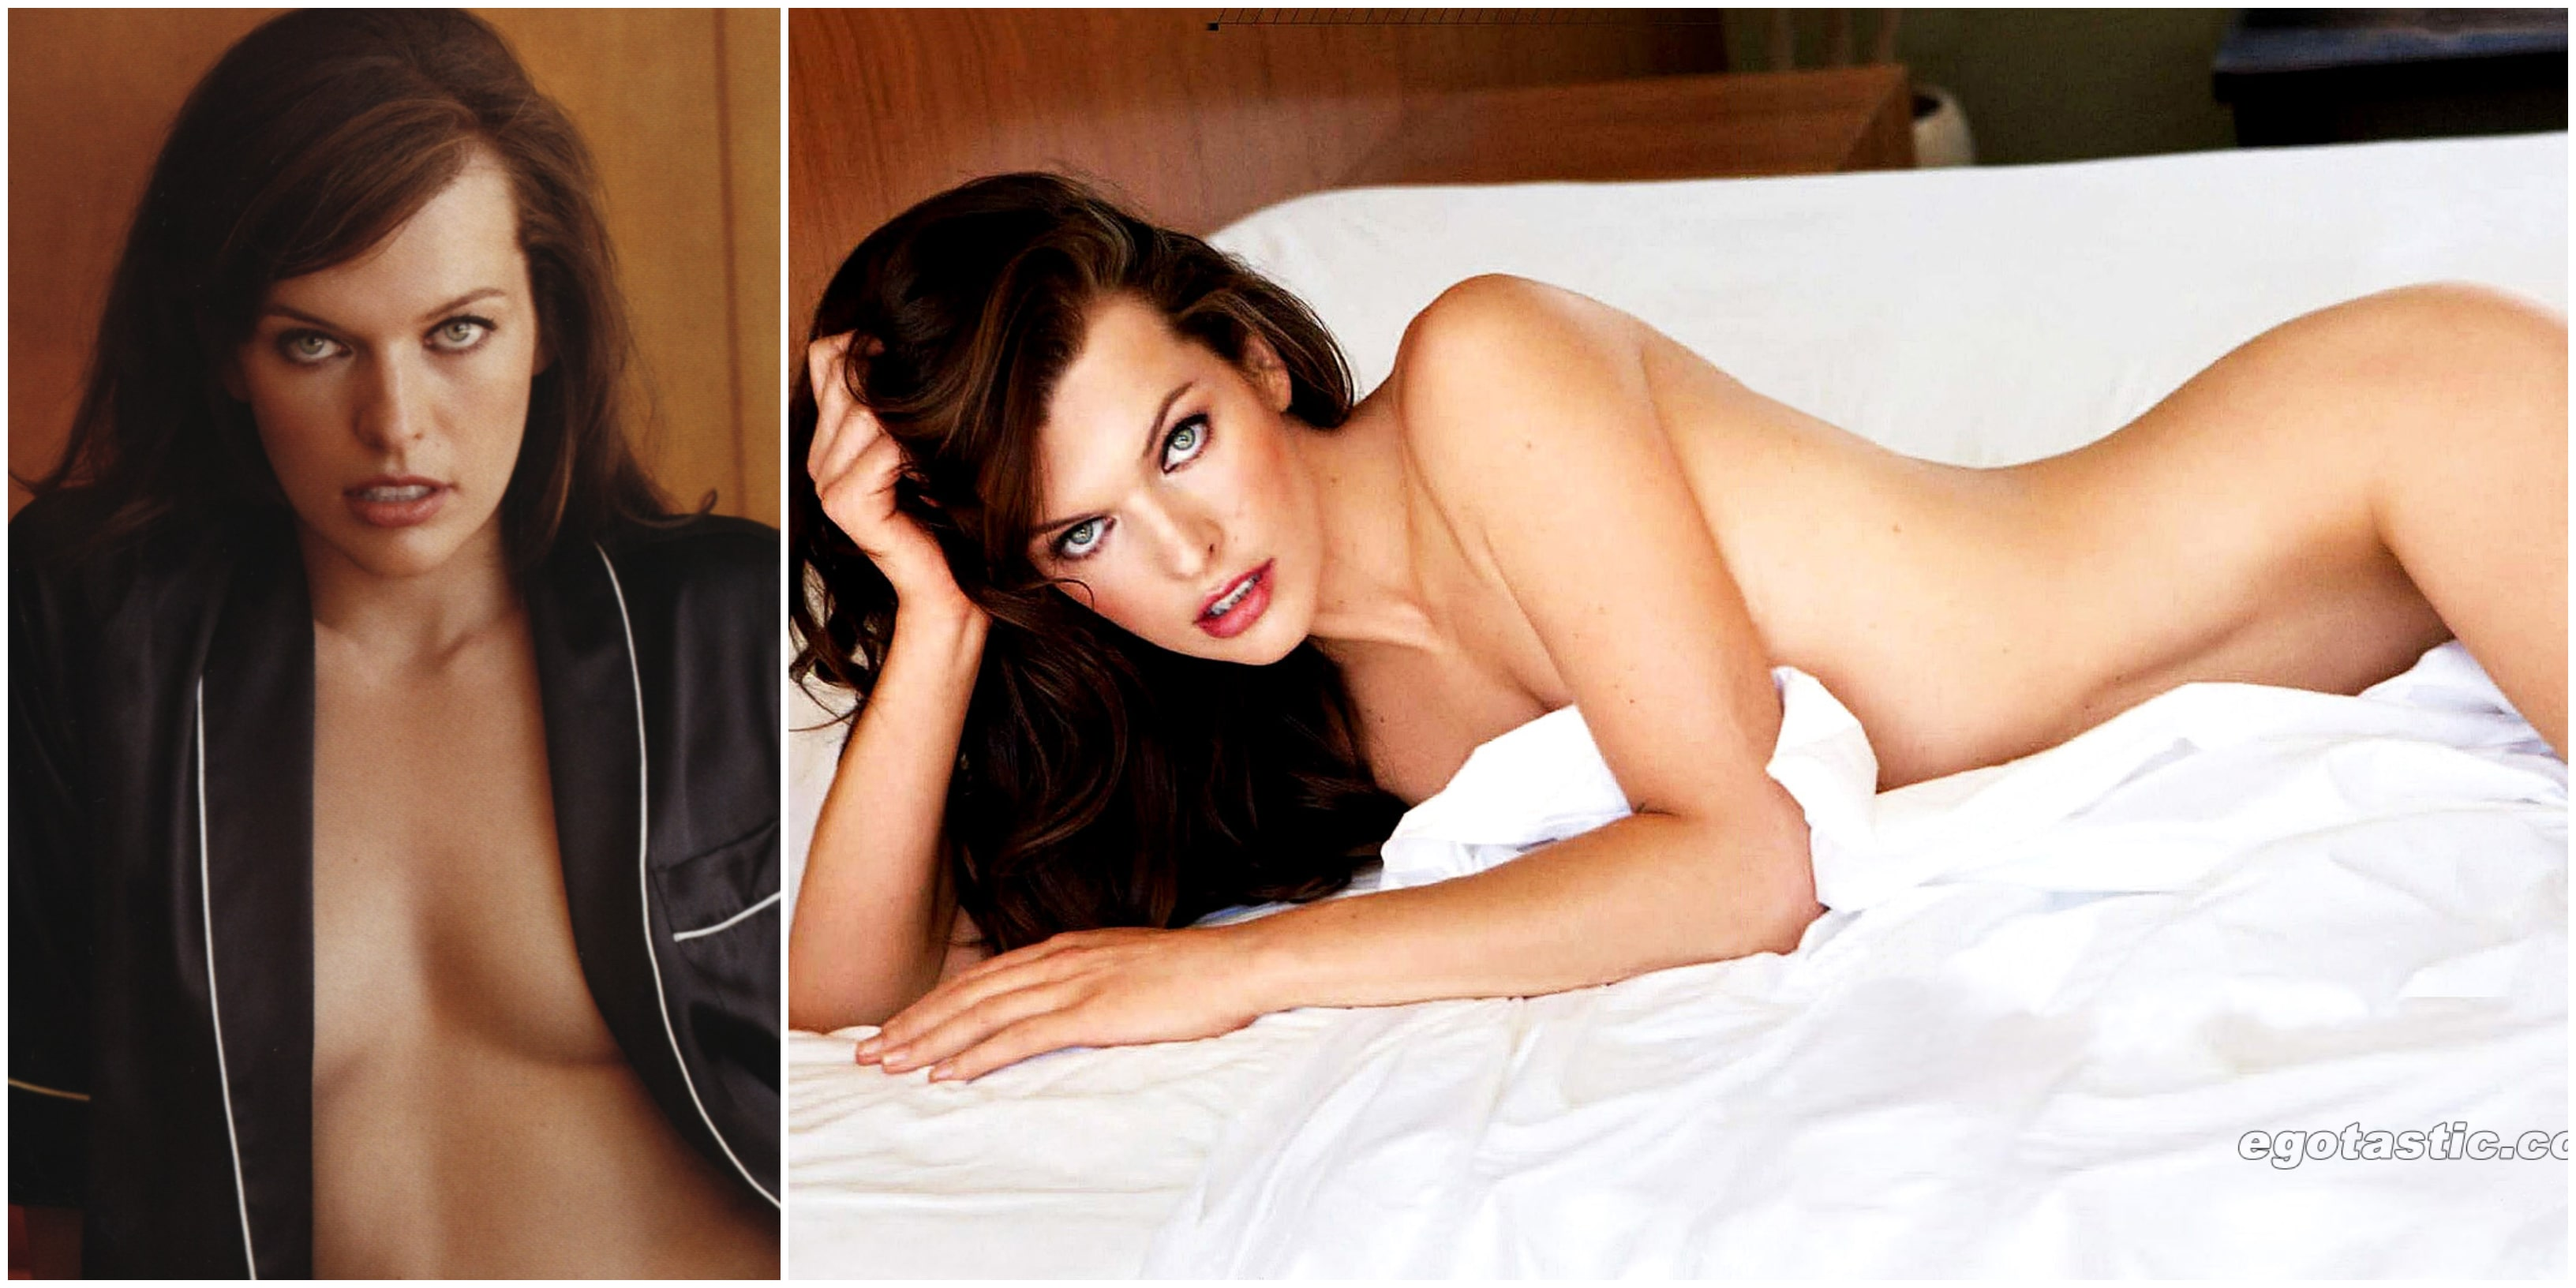 70 Hot And Sexy Pictures Of Milla Jovovich Prove She Is The